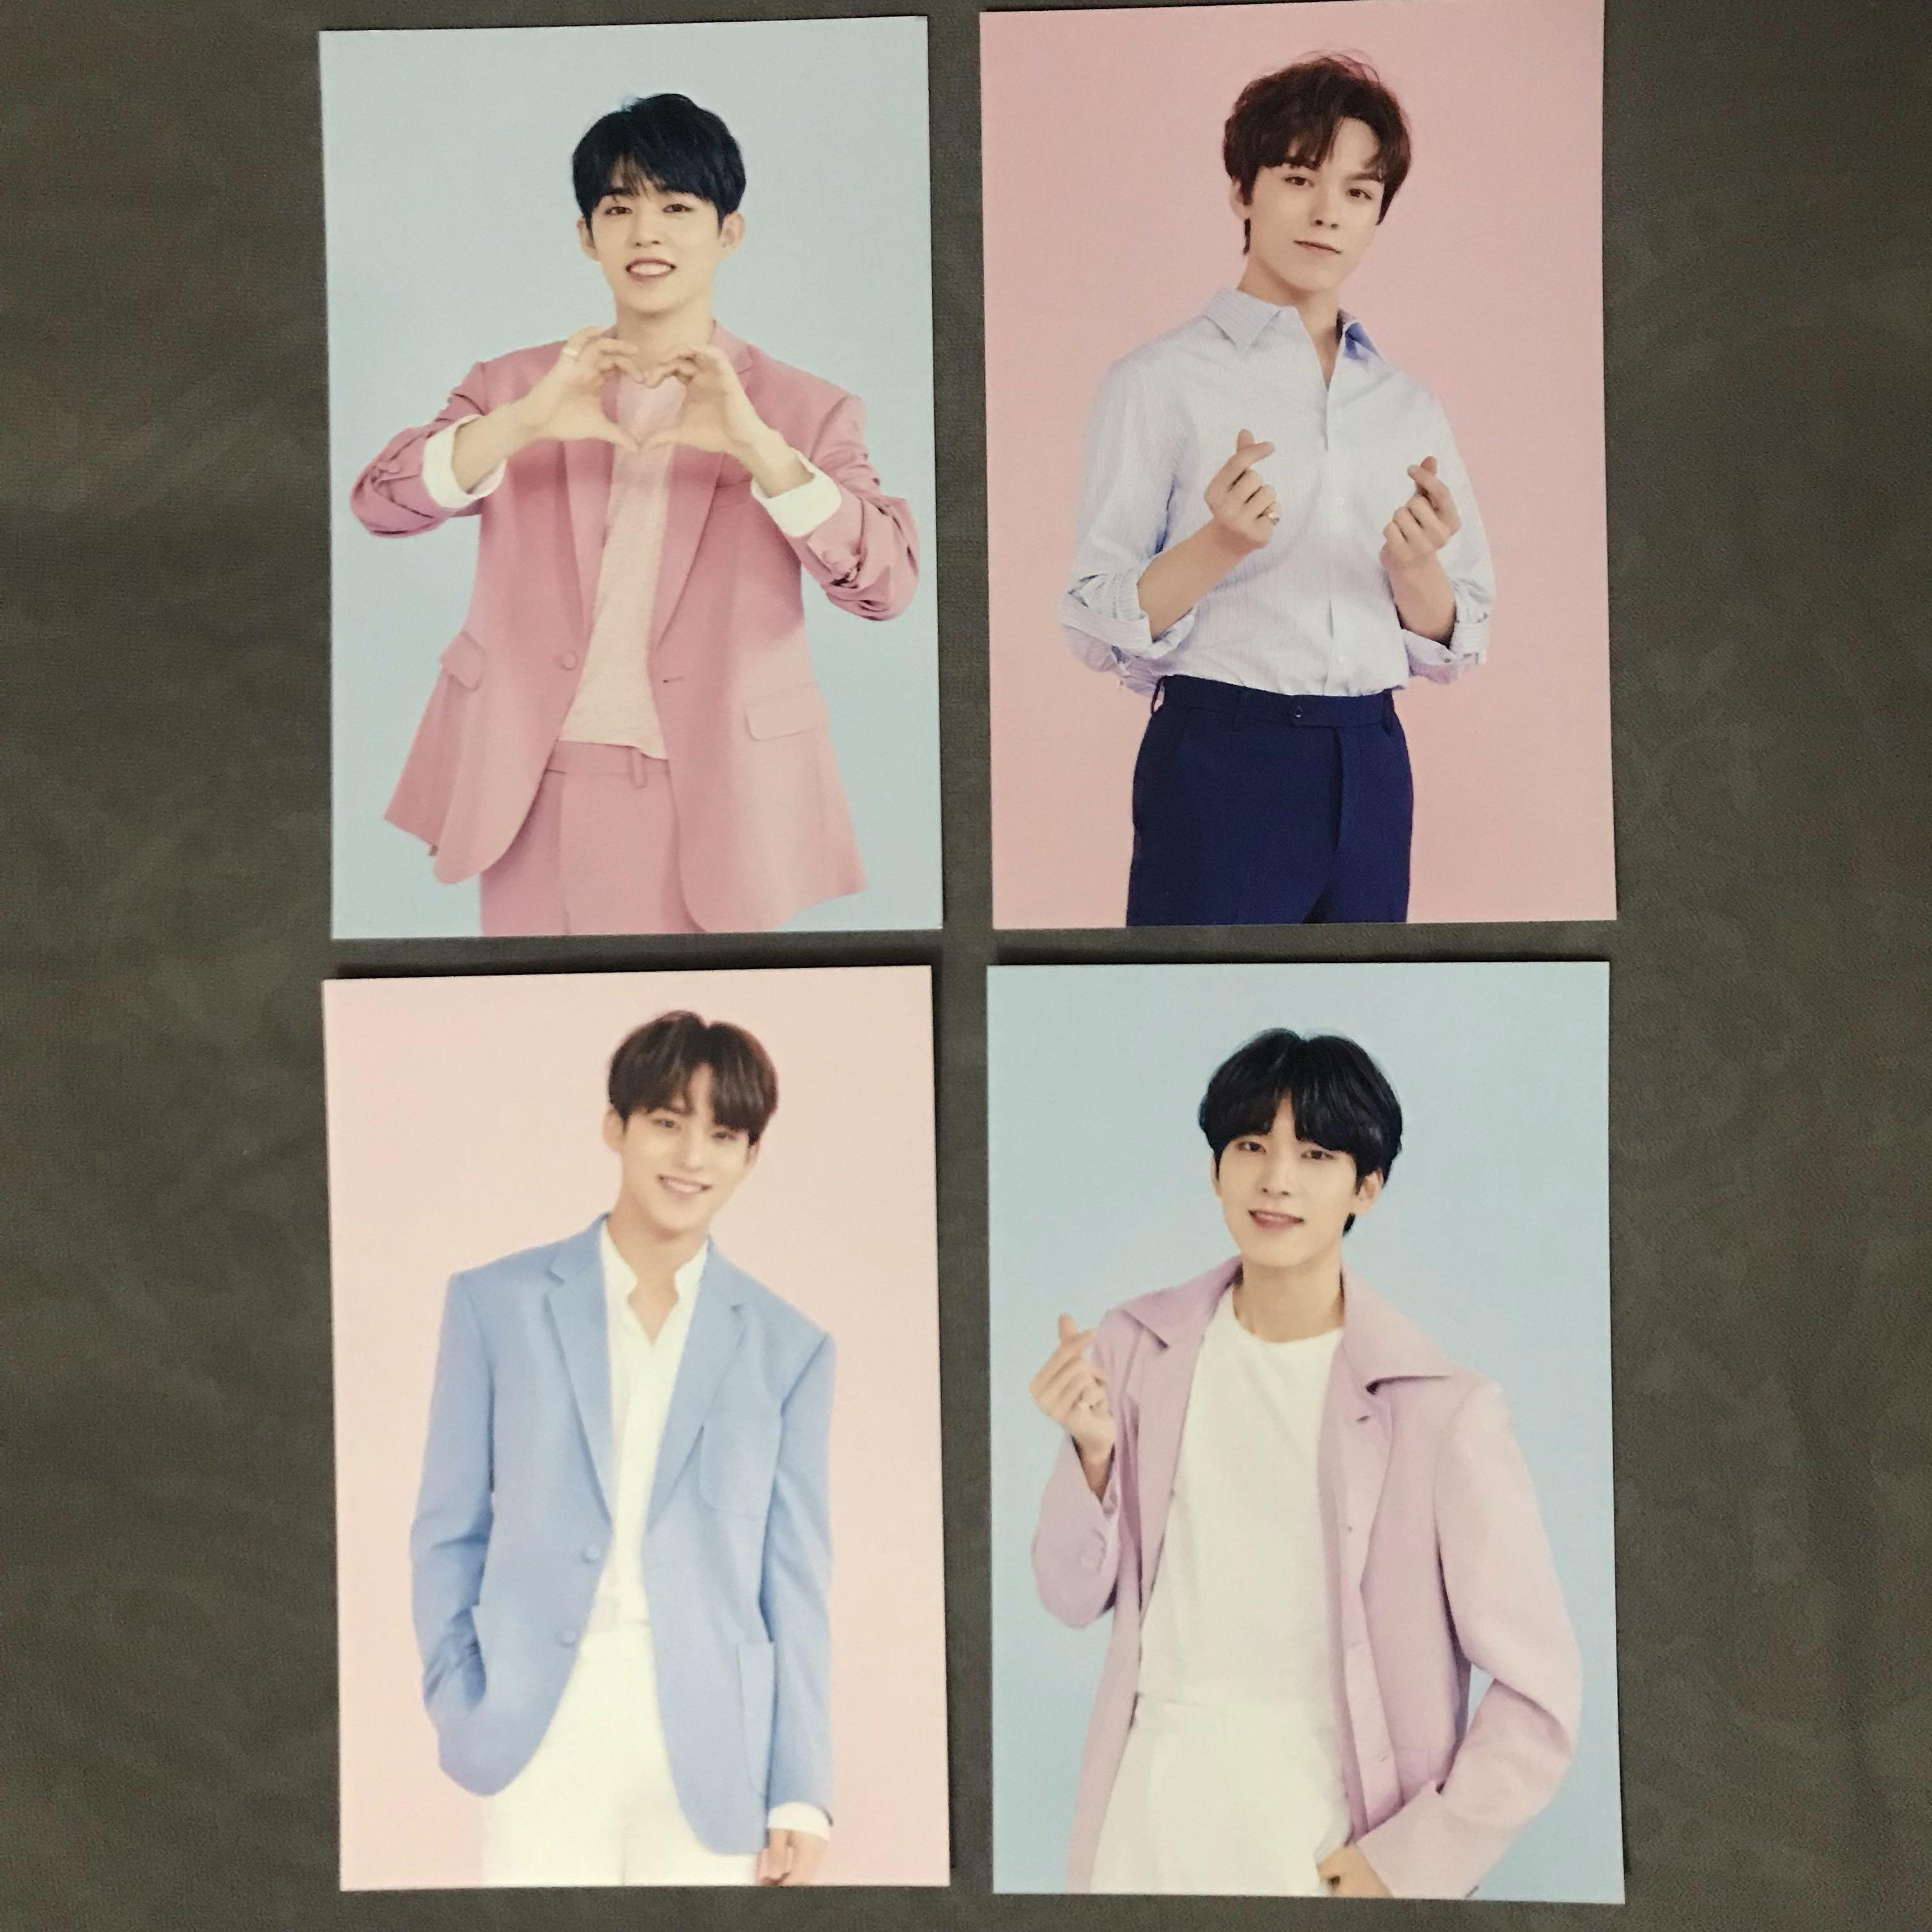 [WTS] [CLEARANCE] SEVENTEEN IN CARATLAND PHOTO SET / TRADING CARDS